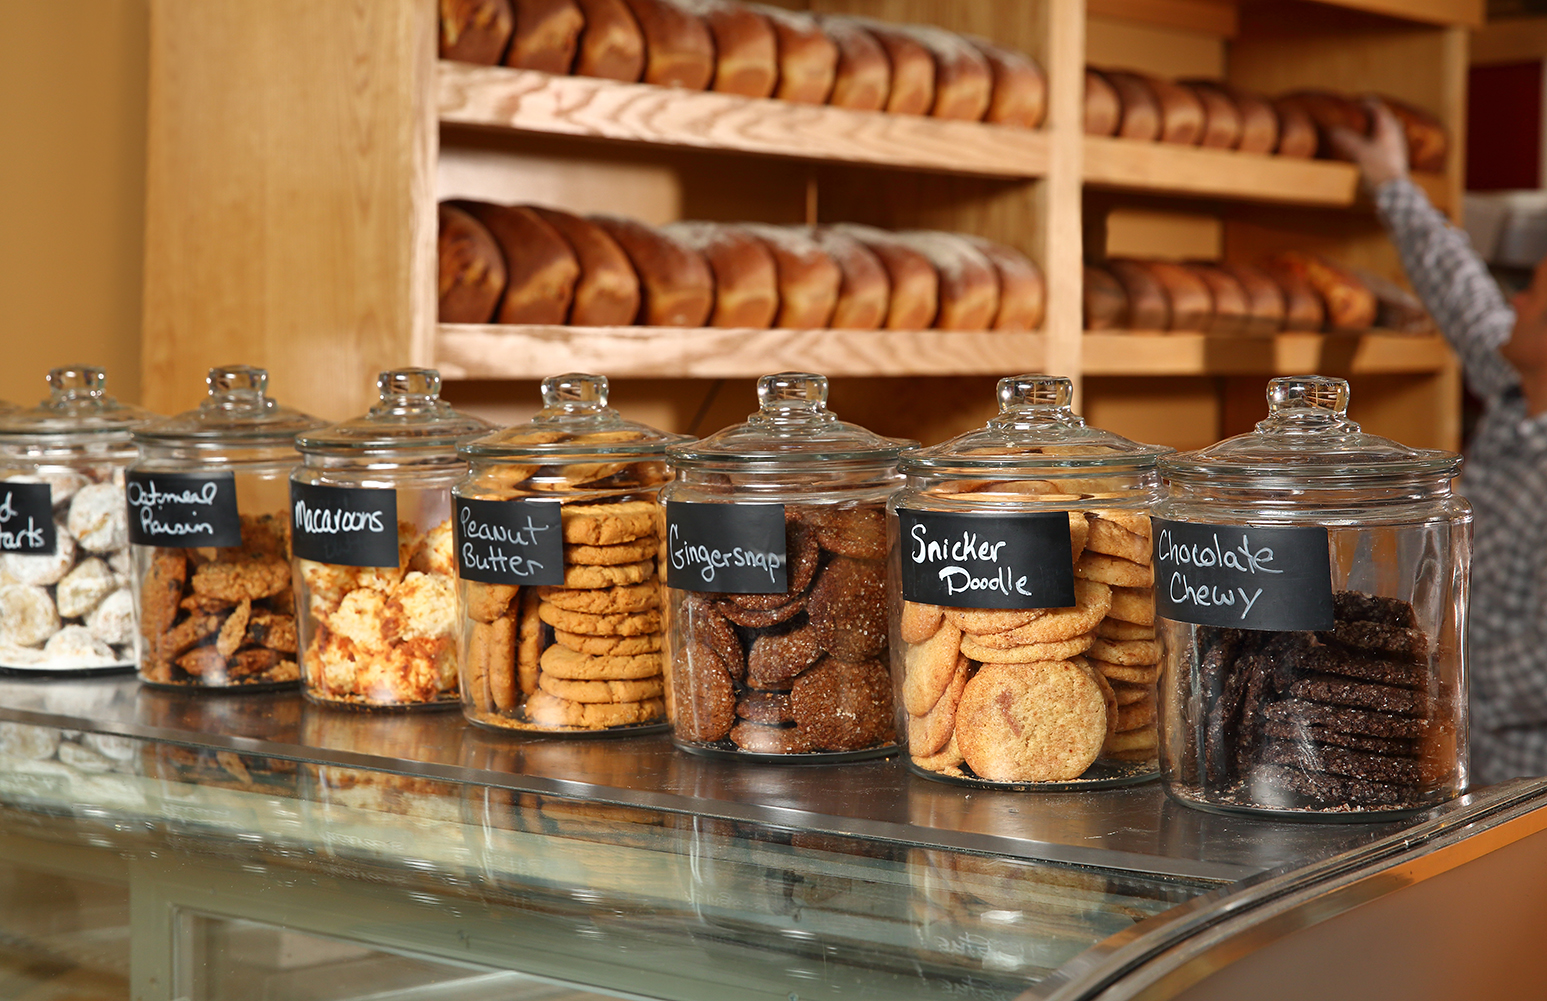 This is a photo from inside the bakery showing a row of glass cookie jars on top of the counter.